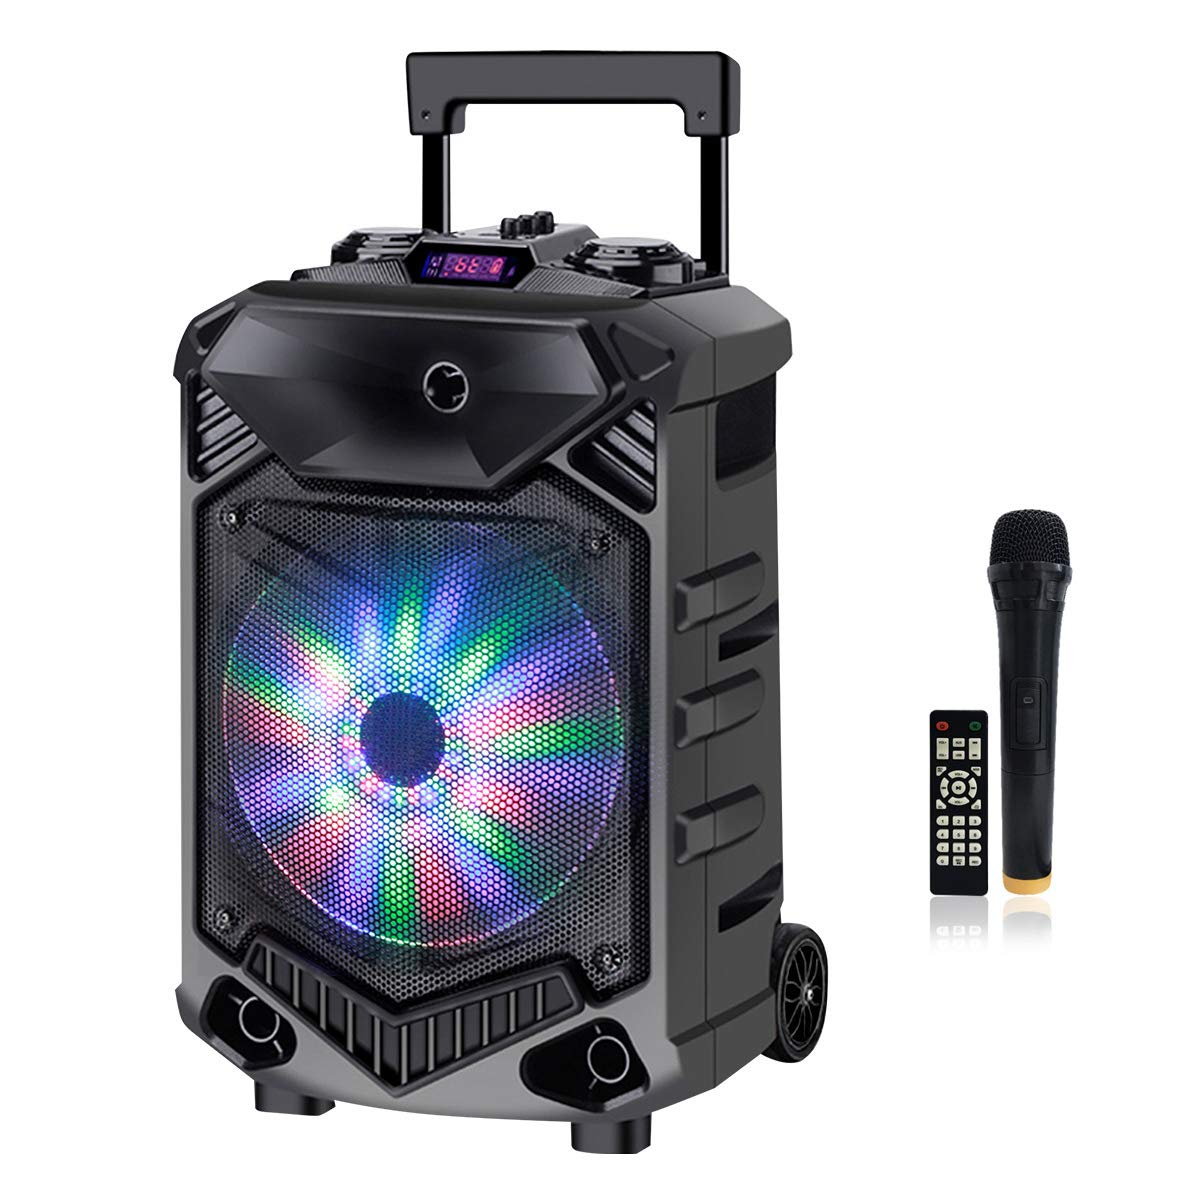 Shinco 12-inch Powered Speaker Karaoke Machine DJ Party Outdoor Audio Built-in Battery Bluetooth PA System with LED light, Wireless UHF Microphone